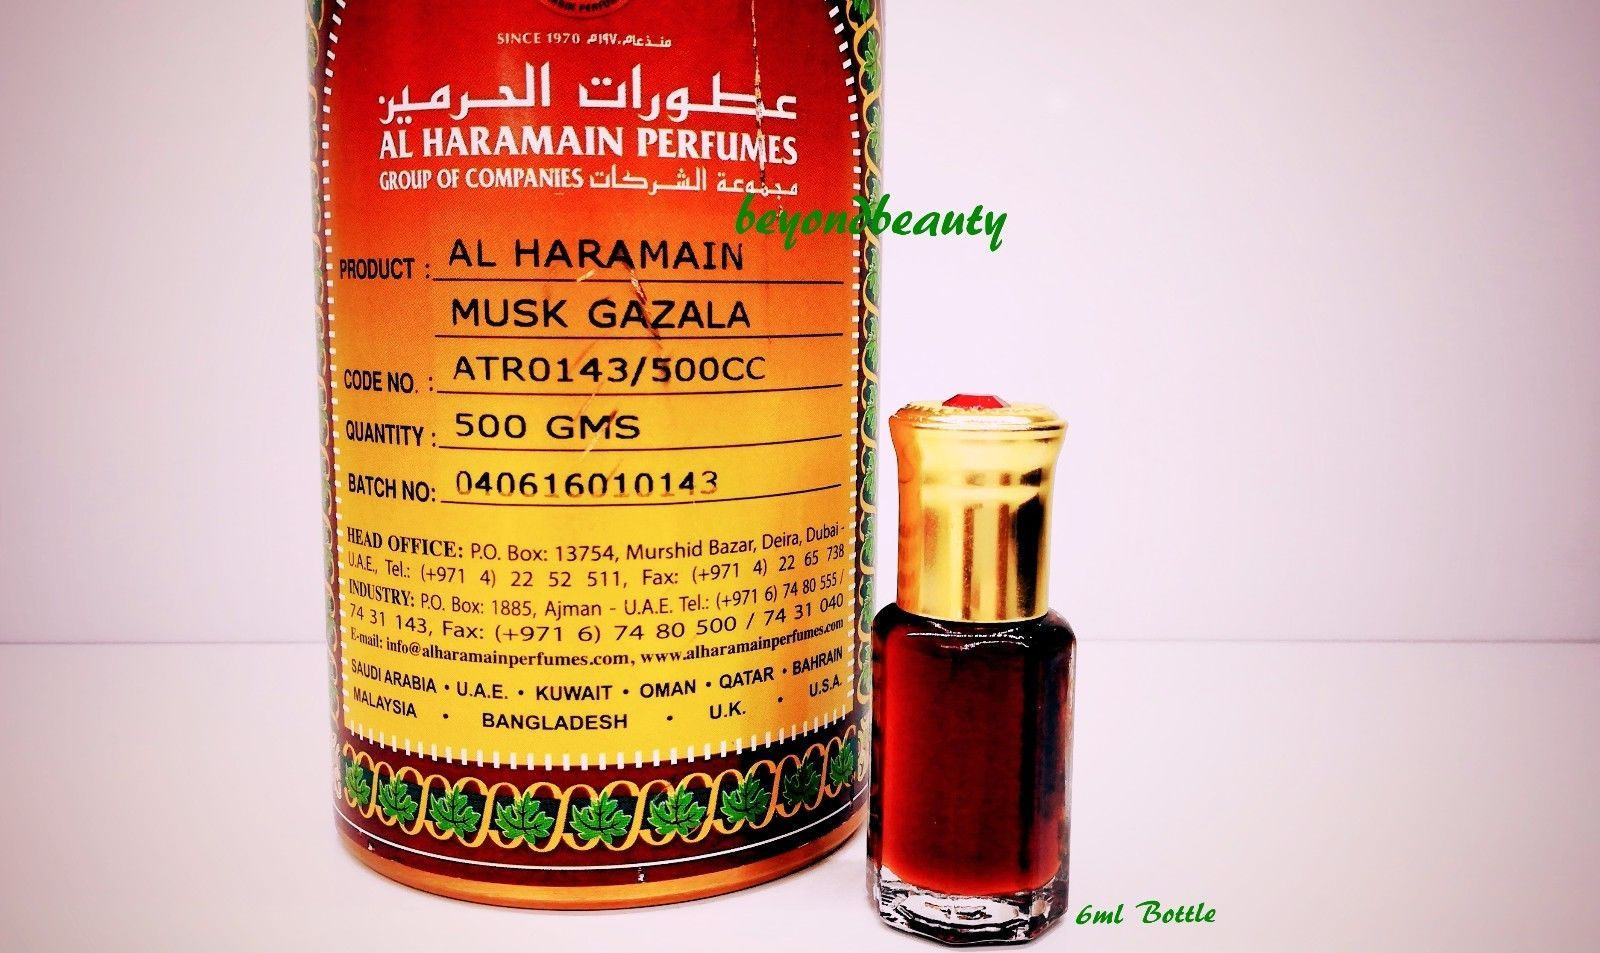 Musk Gazala Is A Strong Sharp Fragrance A Perfume With Spicy Musky Animalic Noteswill Surely Turn Some Heads When You Walk Past People Suitable For Men Wome